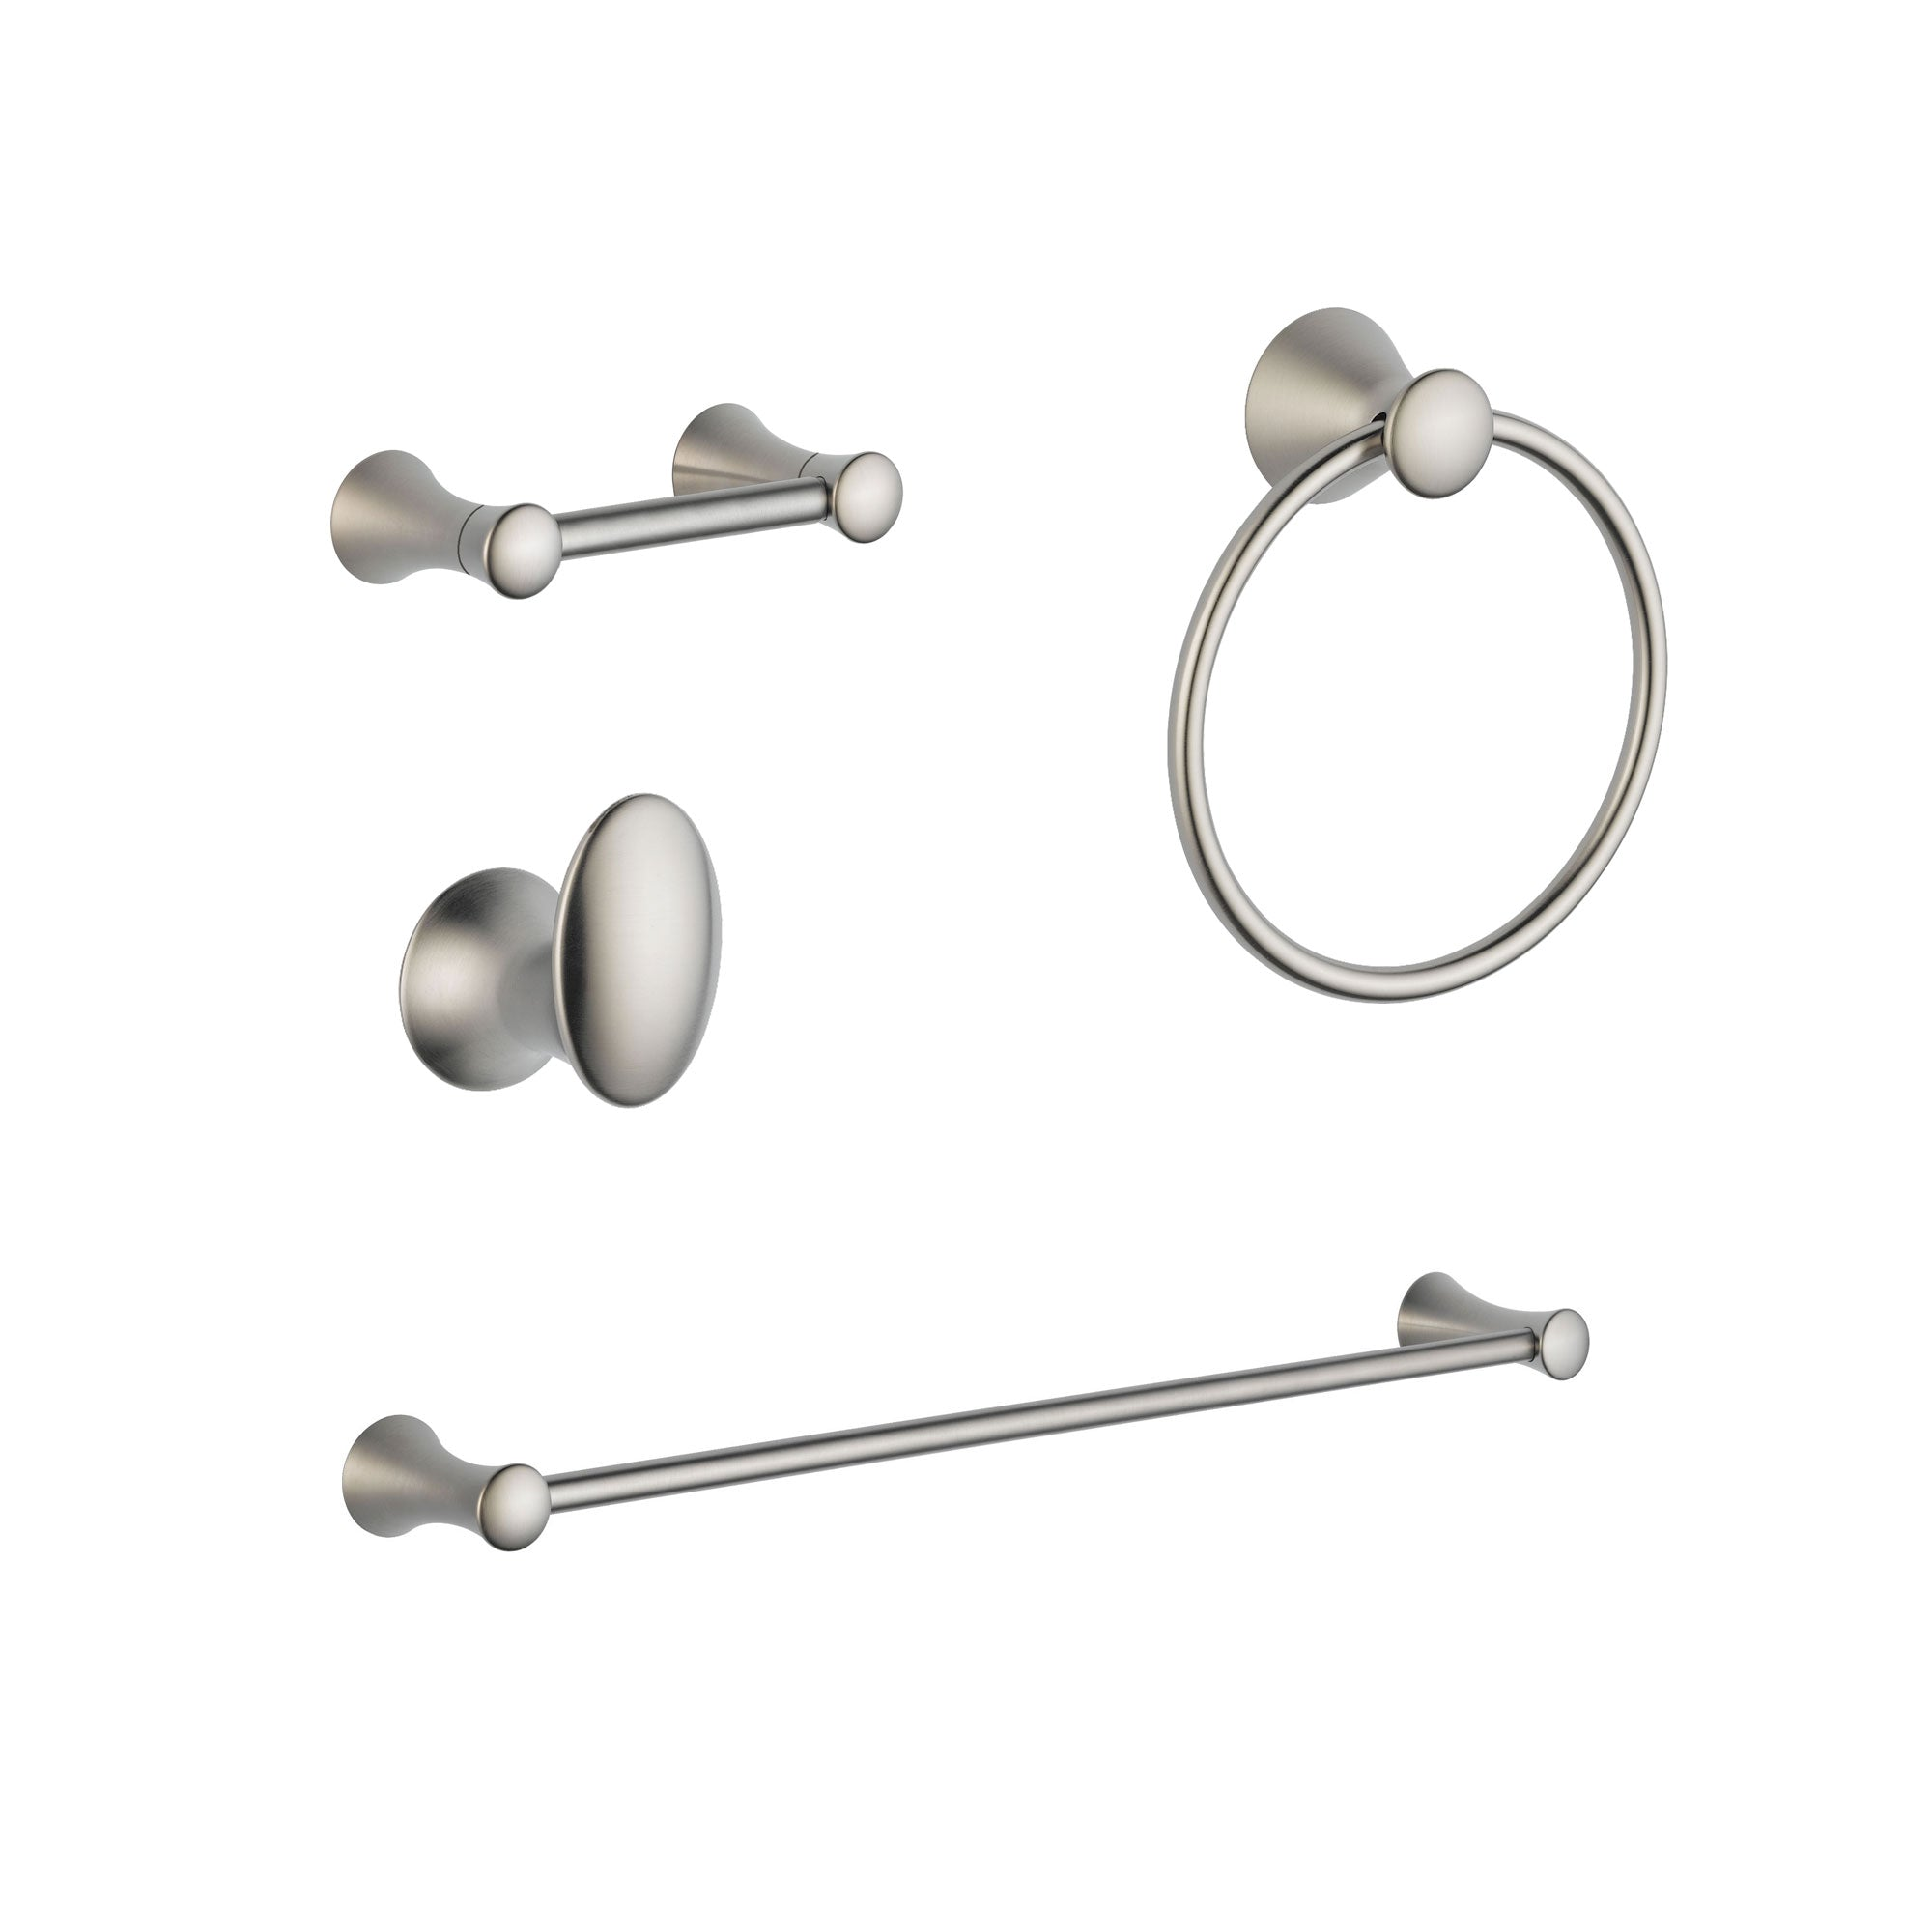 "Delta Lahara Stainless Steel Finish DELUXE Bathroom Accessory Set Includes: 24"" Towel Bar, Toilet Paper Holder, Robe Hook, and Towel Ring D10049AP"